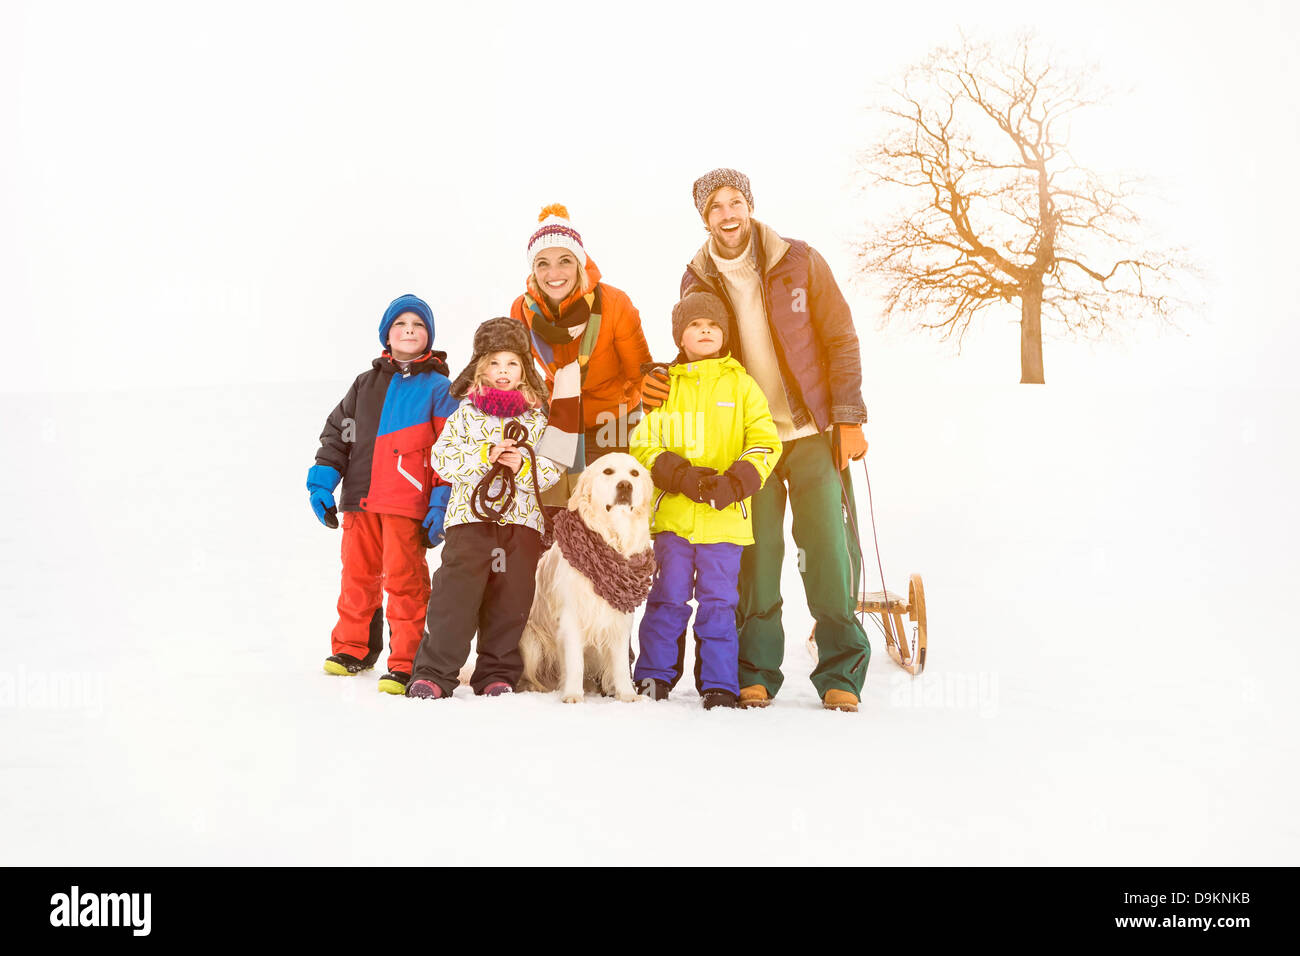 Family with three children standing in snow - Stock Image